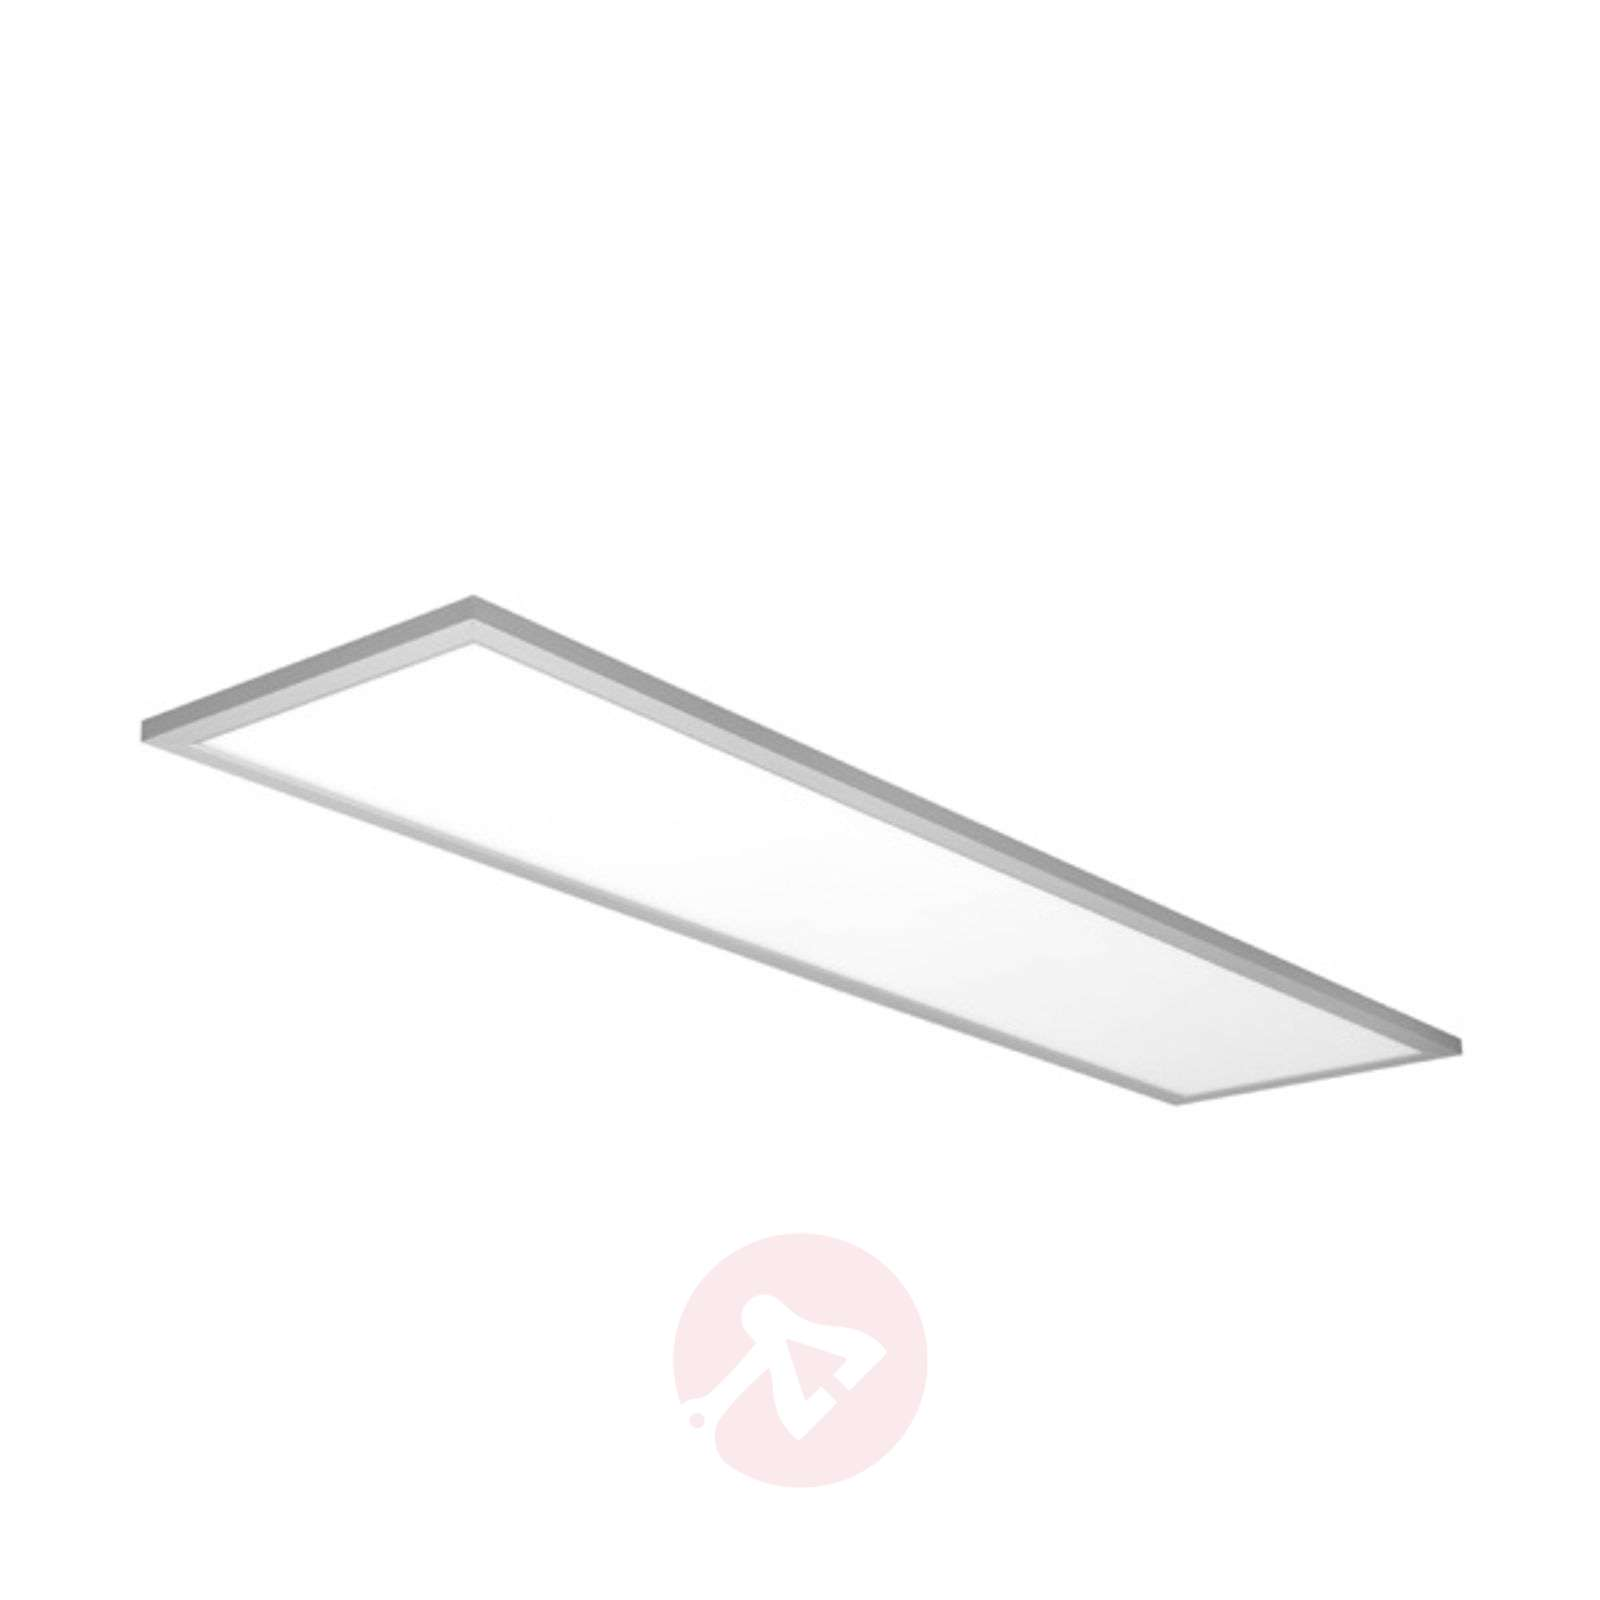 Rectangular All-in-one LED panel-3002170X-01